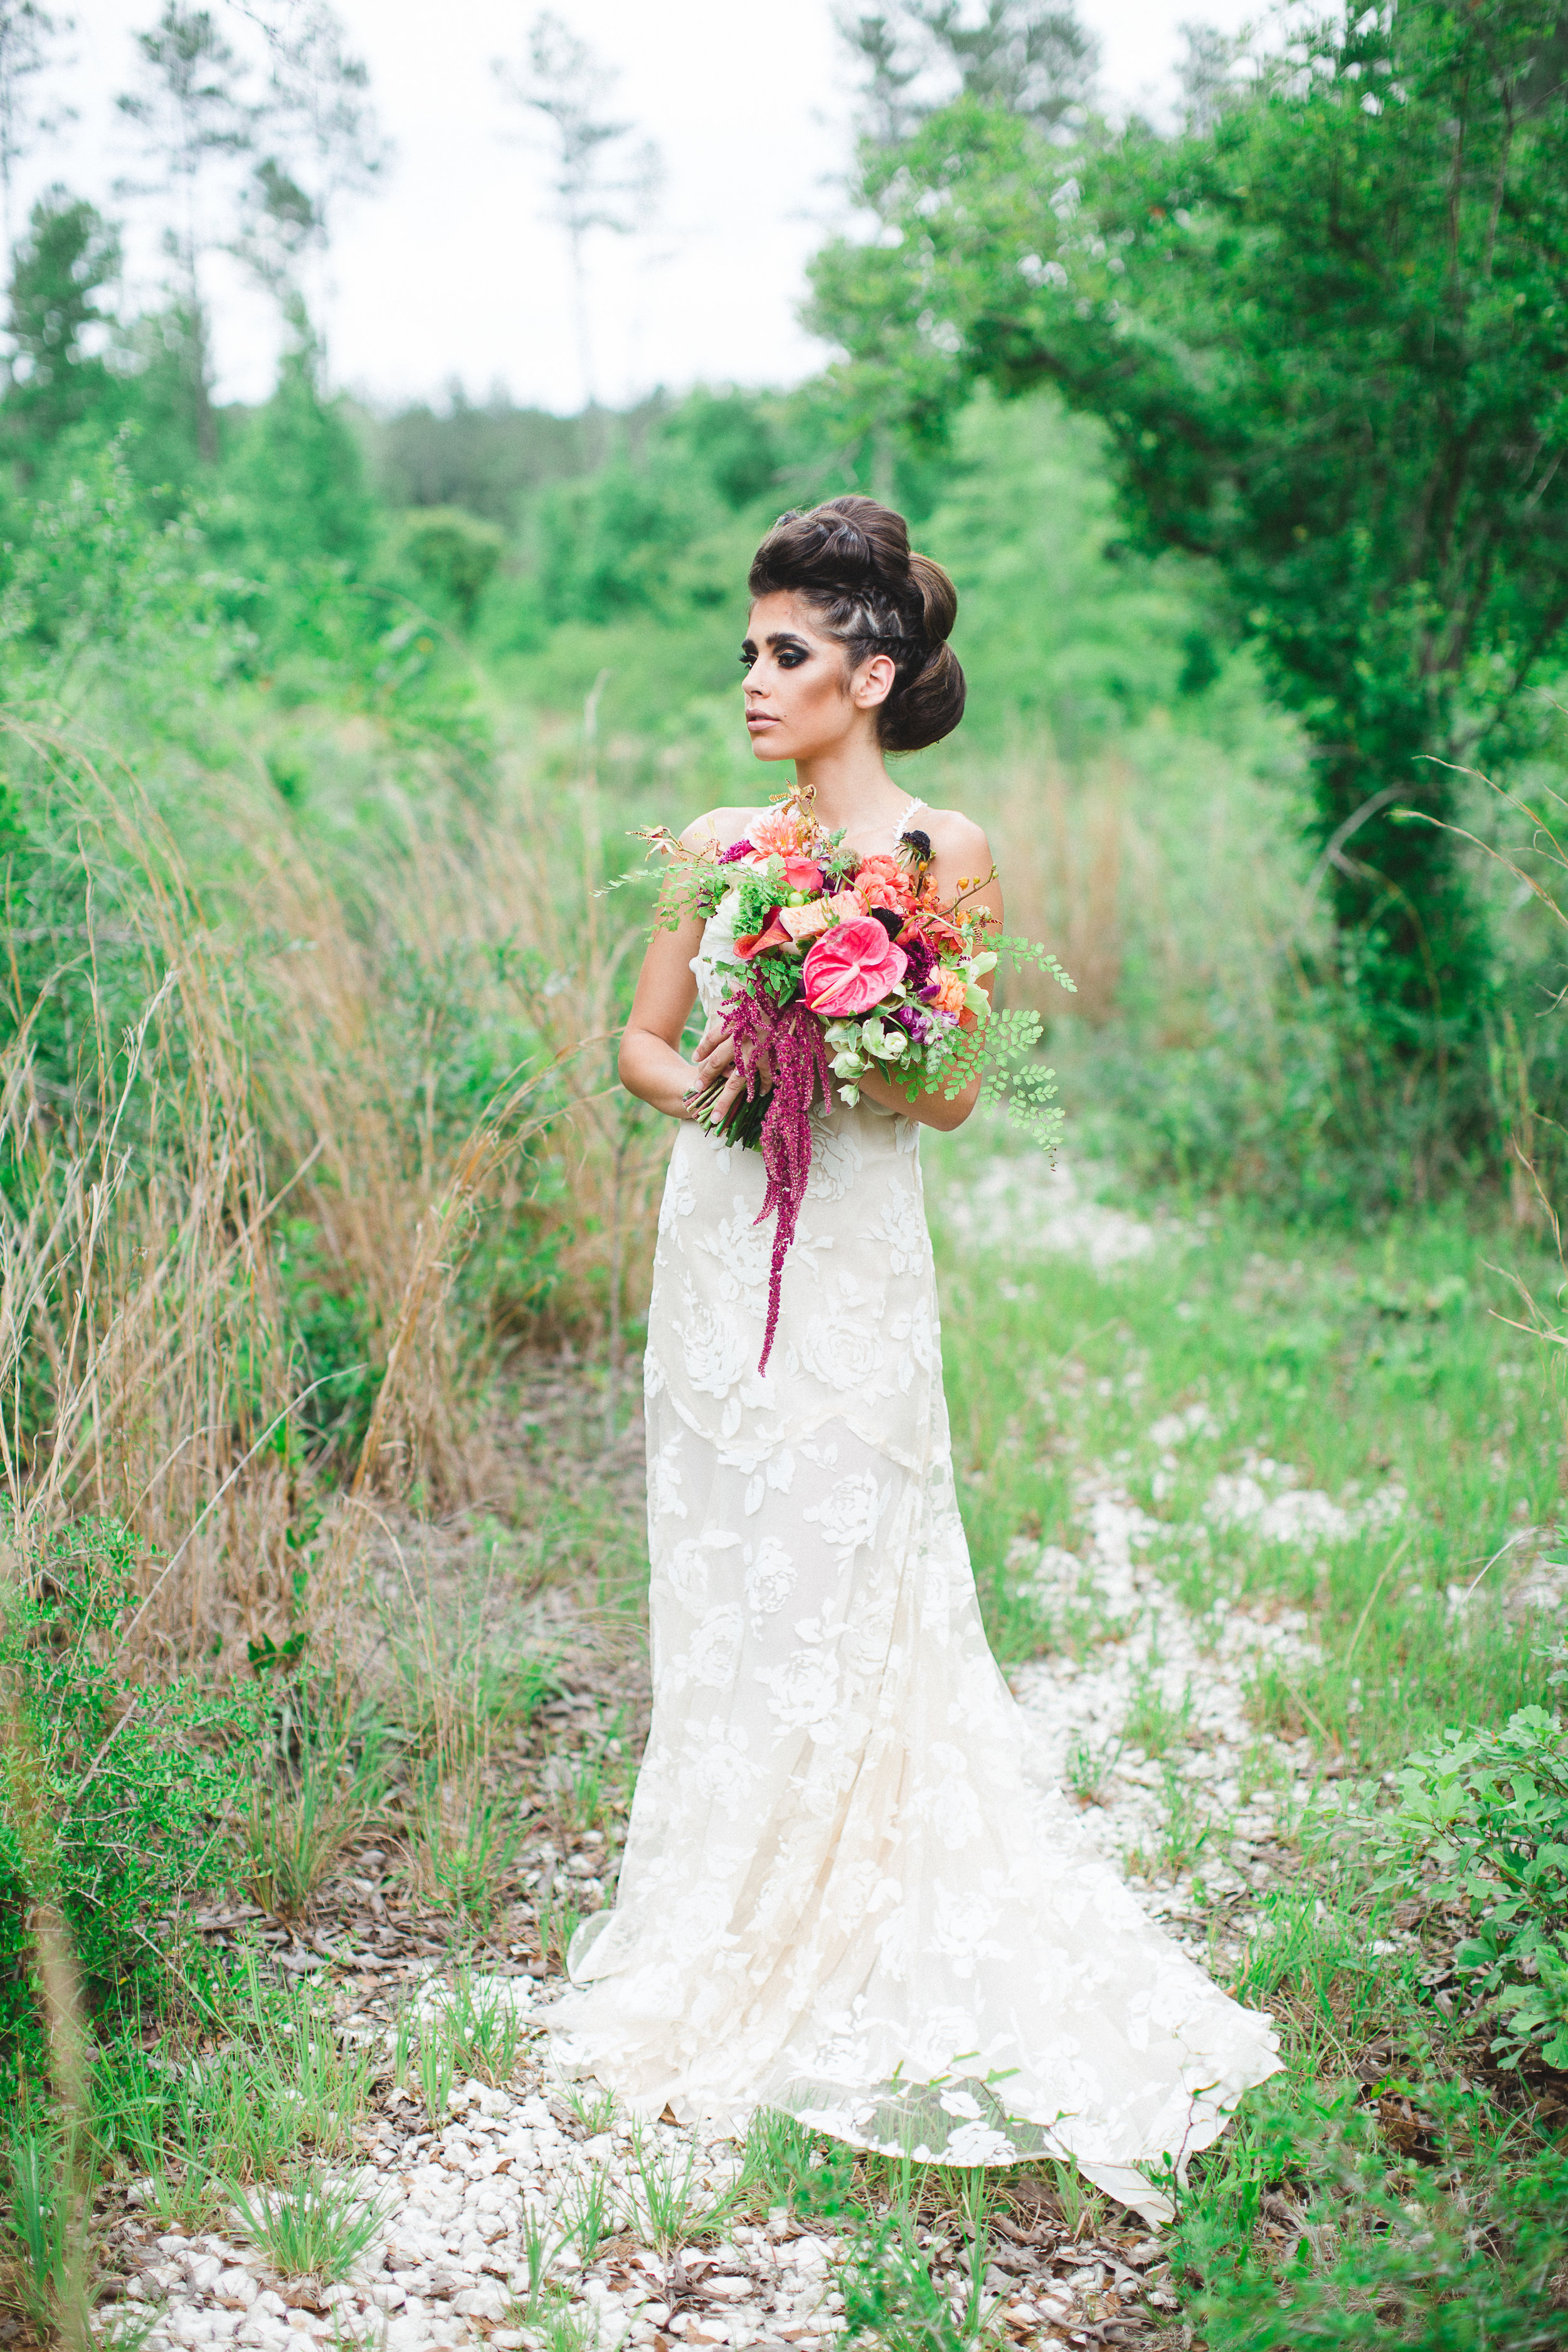 izzy-hudgins-photography-emily-burton-designs-ivory-and-beau-bridal-boutique-daughters-of-simone-sonje-jenny-yoo-bridesmaids-glamping-wedding-boho-wedding-outdoor-wedding-coldwater-gardens-wedding-savannah-bridal-boutique-savannah-wedding-planner-8.jpg